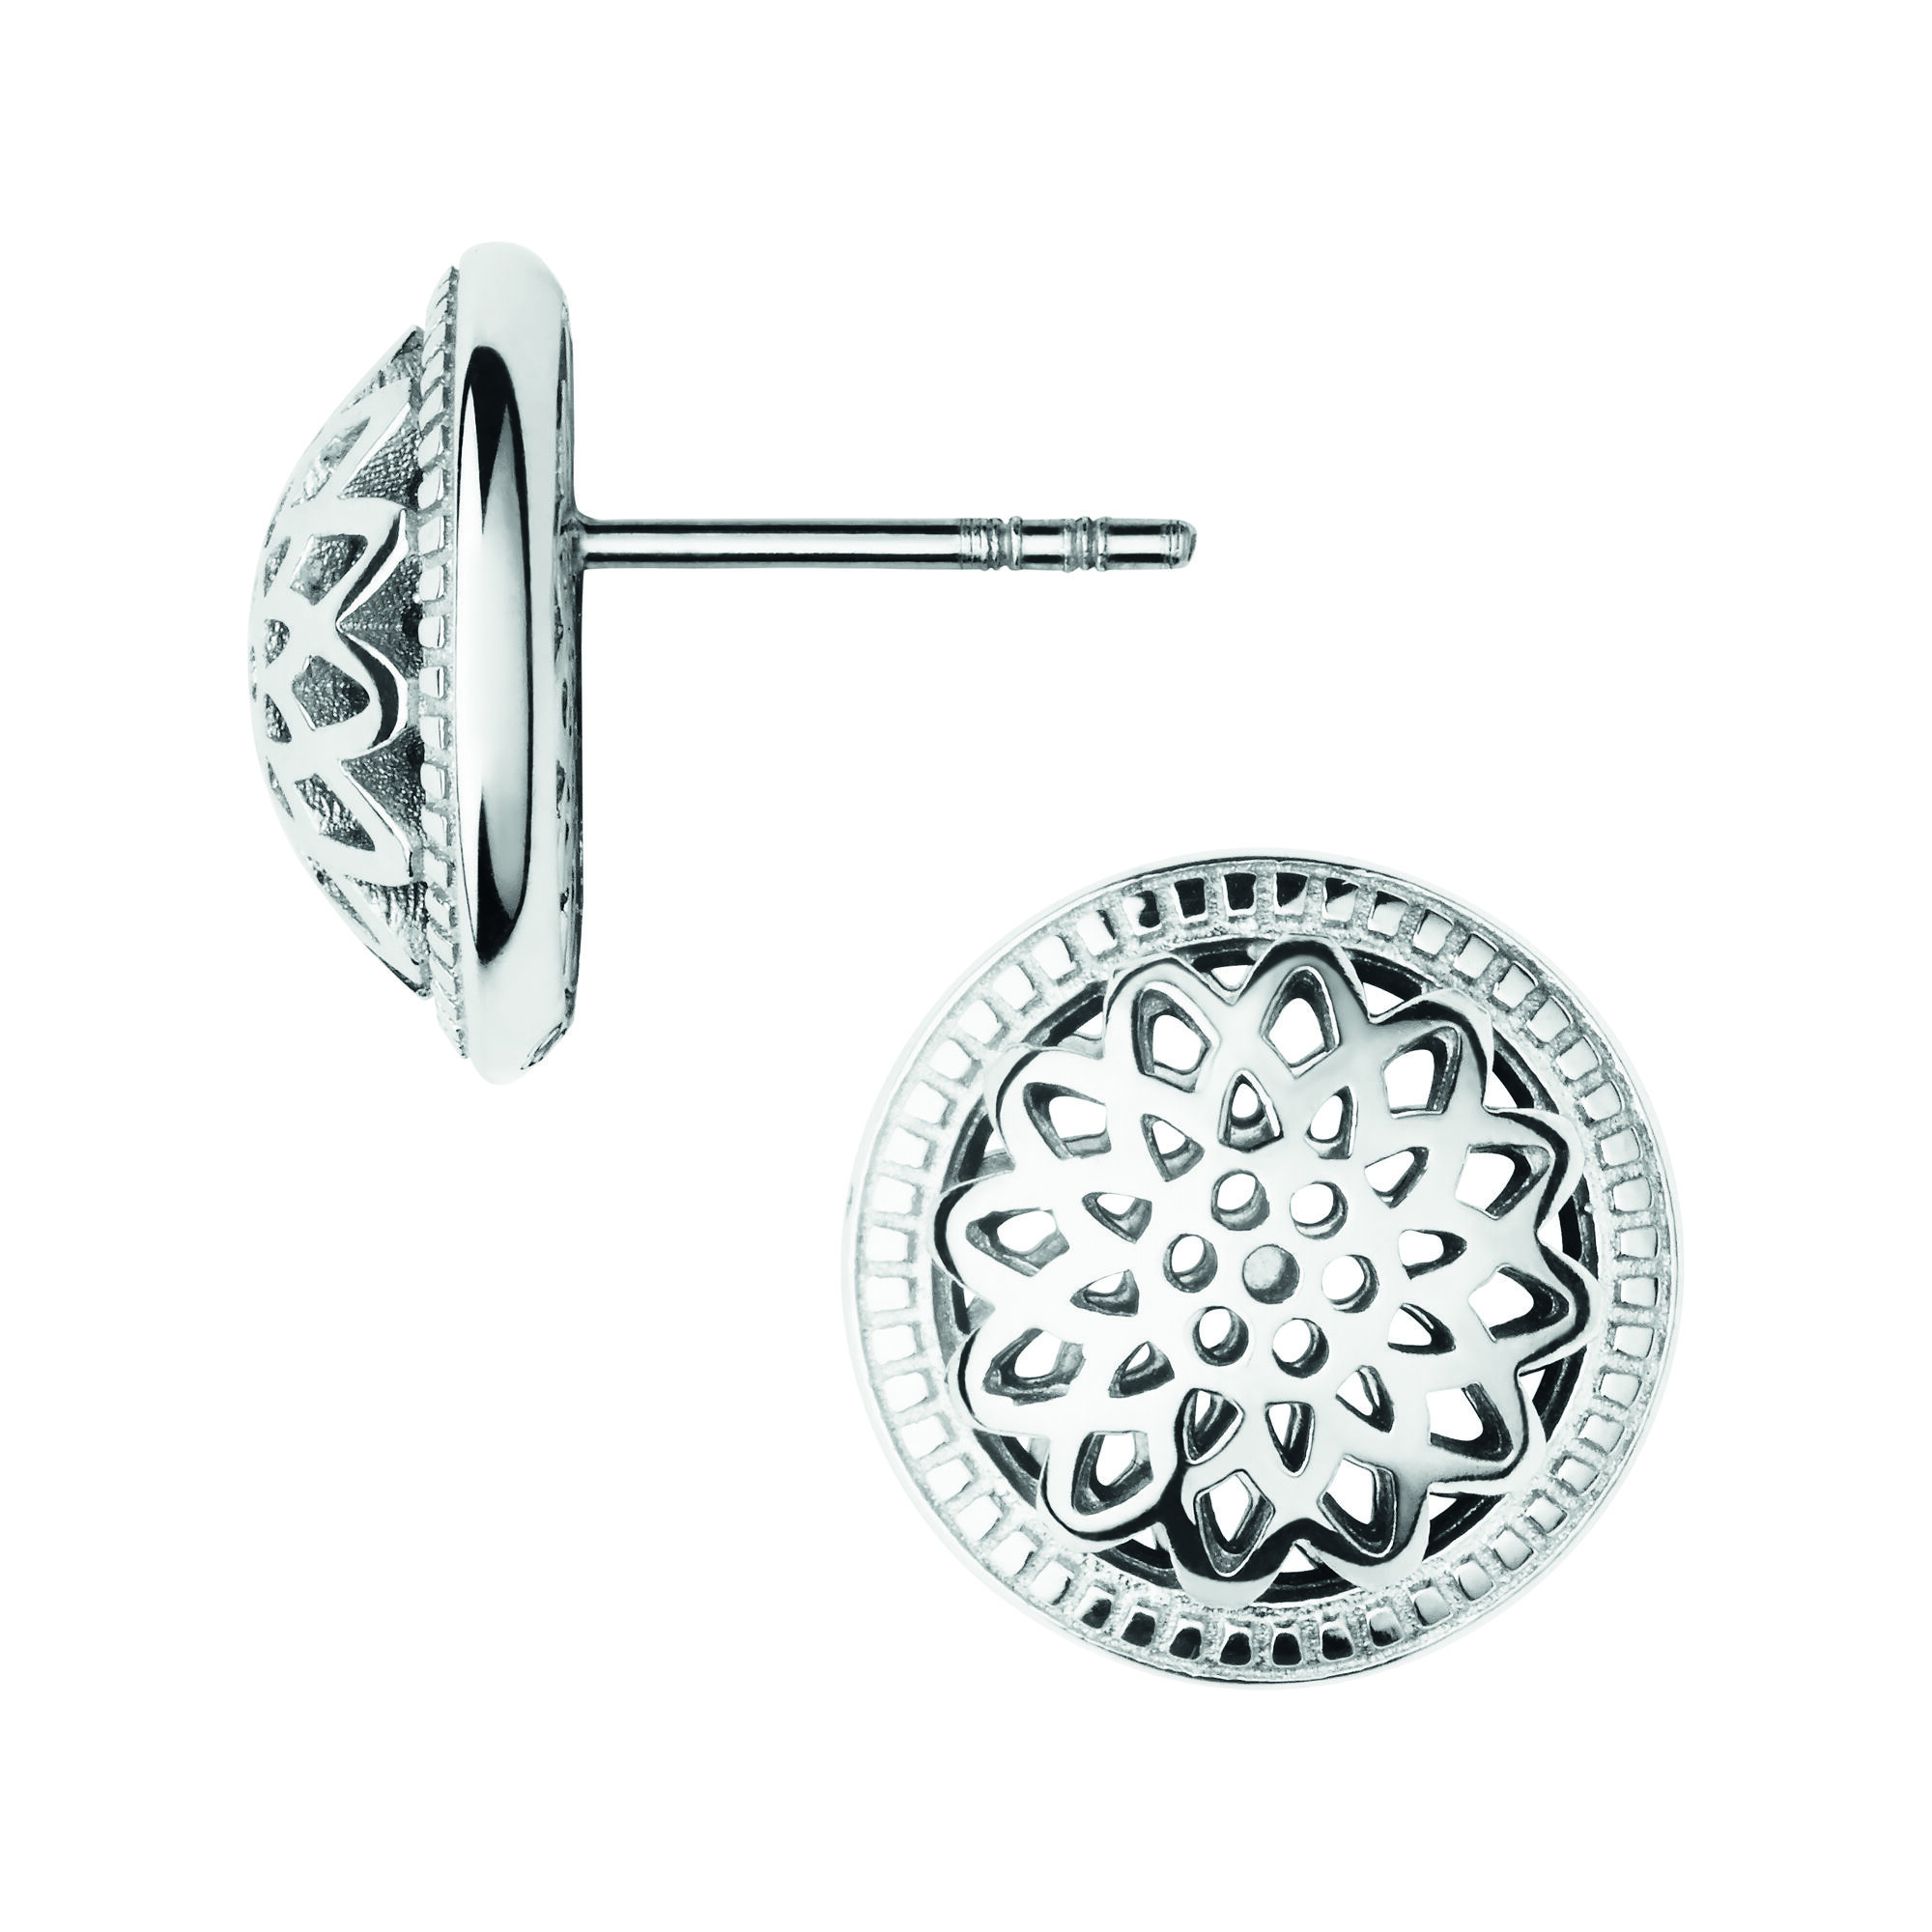 Timeless Sterling Silver Domed Stud Earrings Hires